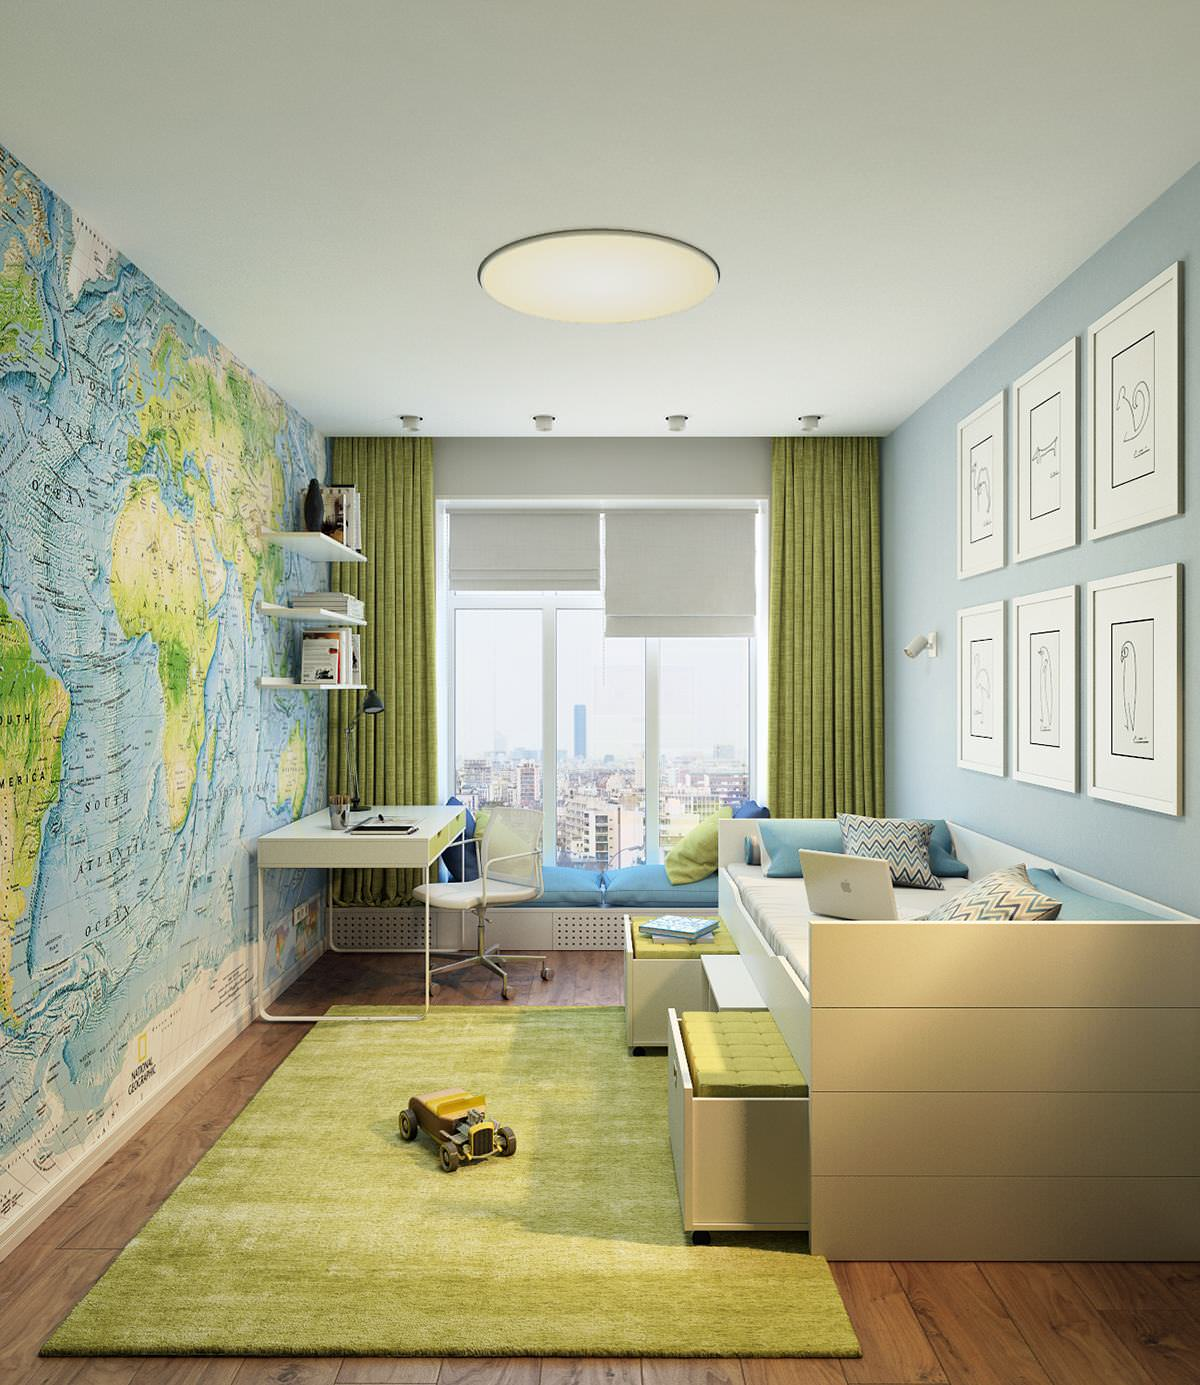 Decorating themes include island getaway, parisian, casual, and more. 24+ Teen Boys Room Designs, Decorating Ideas | Design